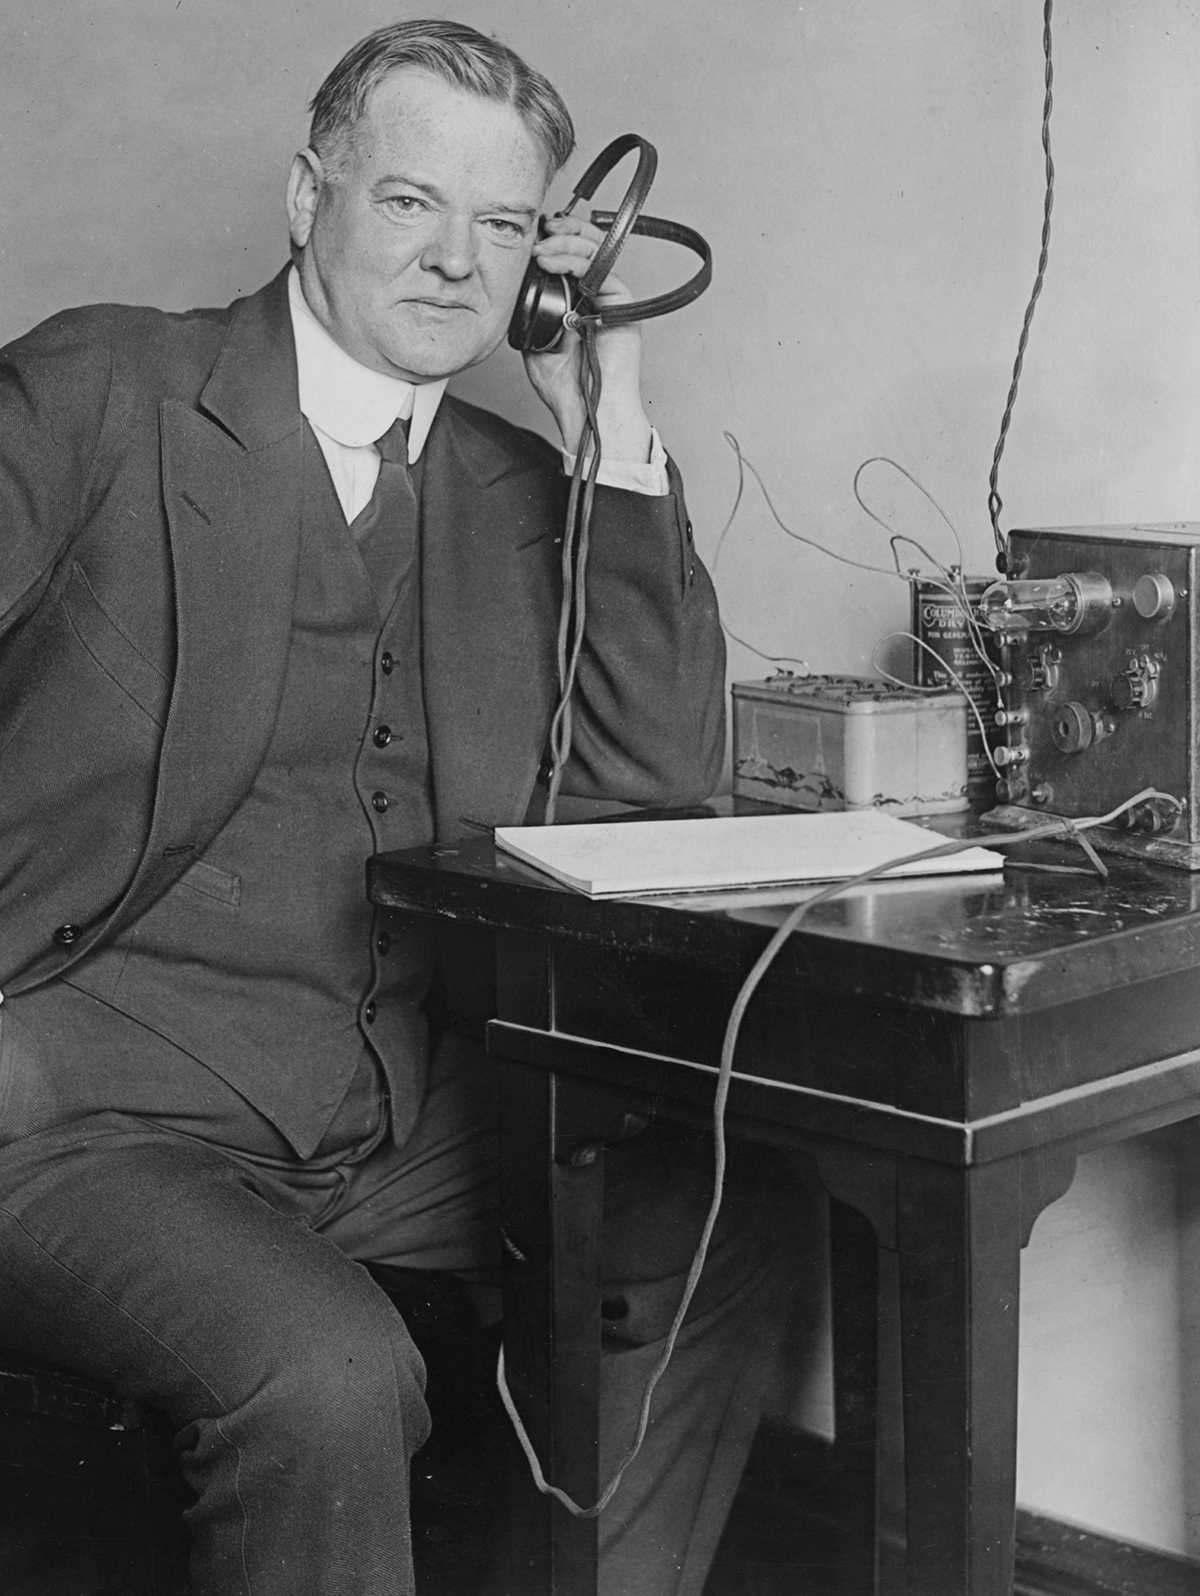 Hoover listens to a radio